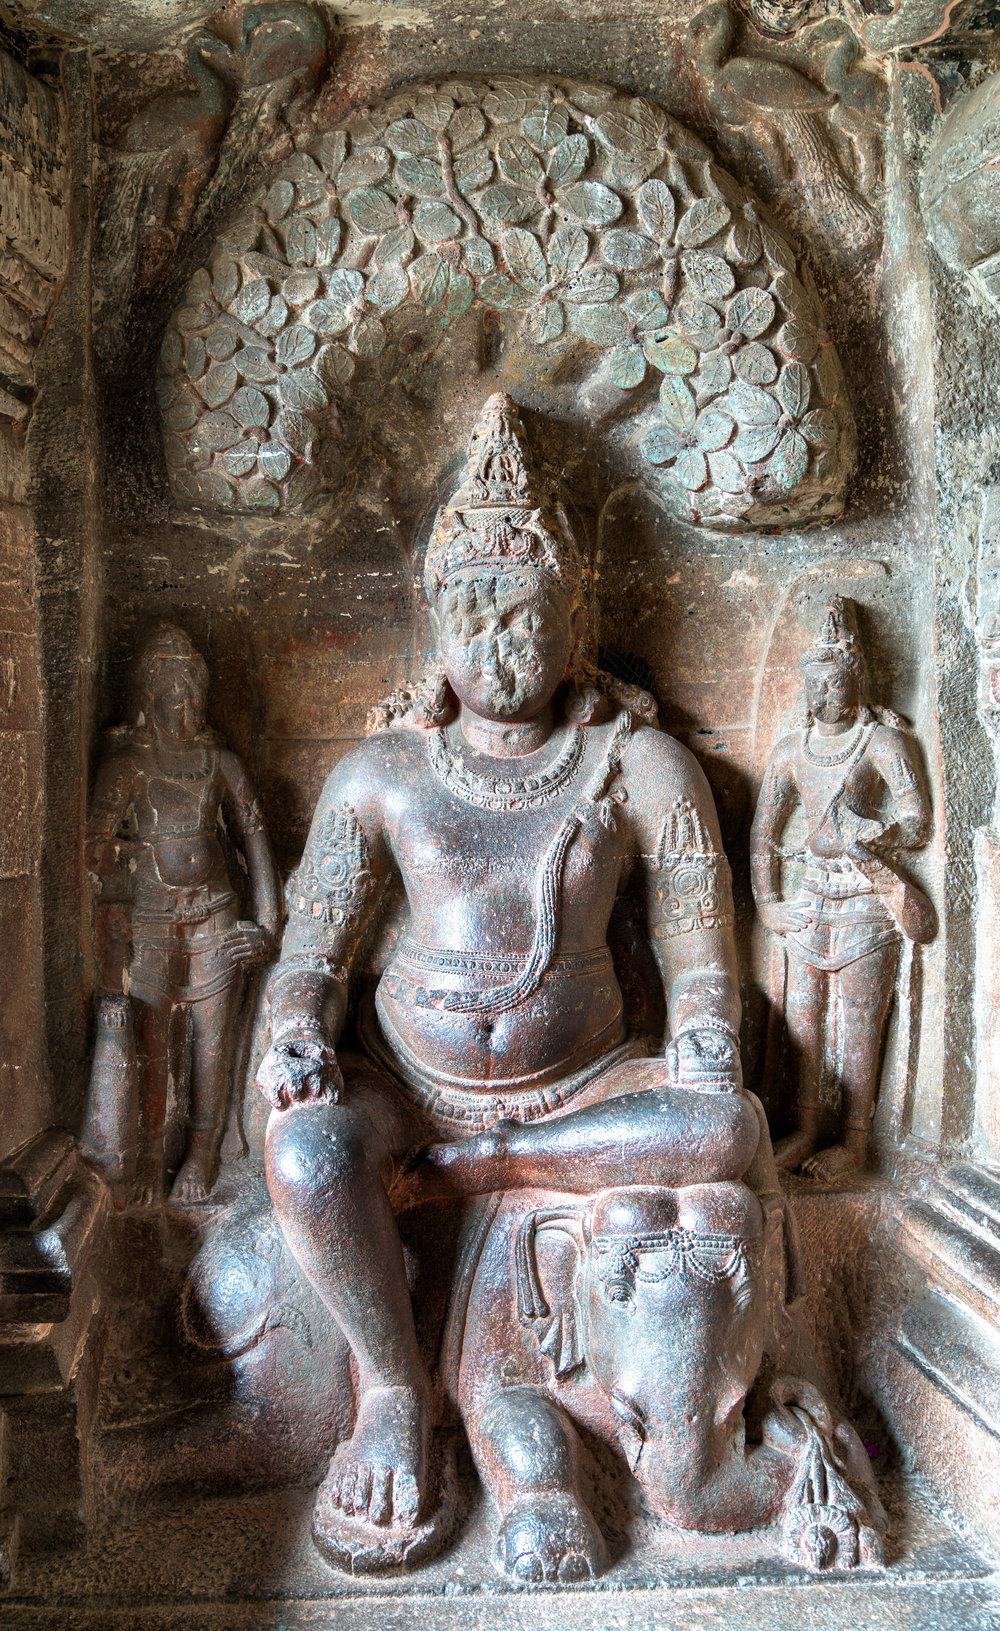 Indra (Vedic king of the gods) - Sambha temple at Ellora Caves, Maharashtra, India